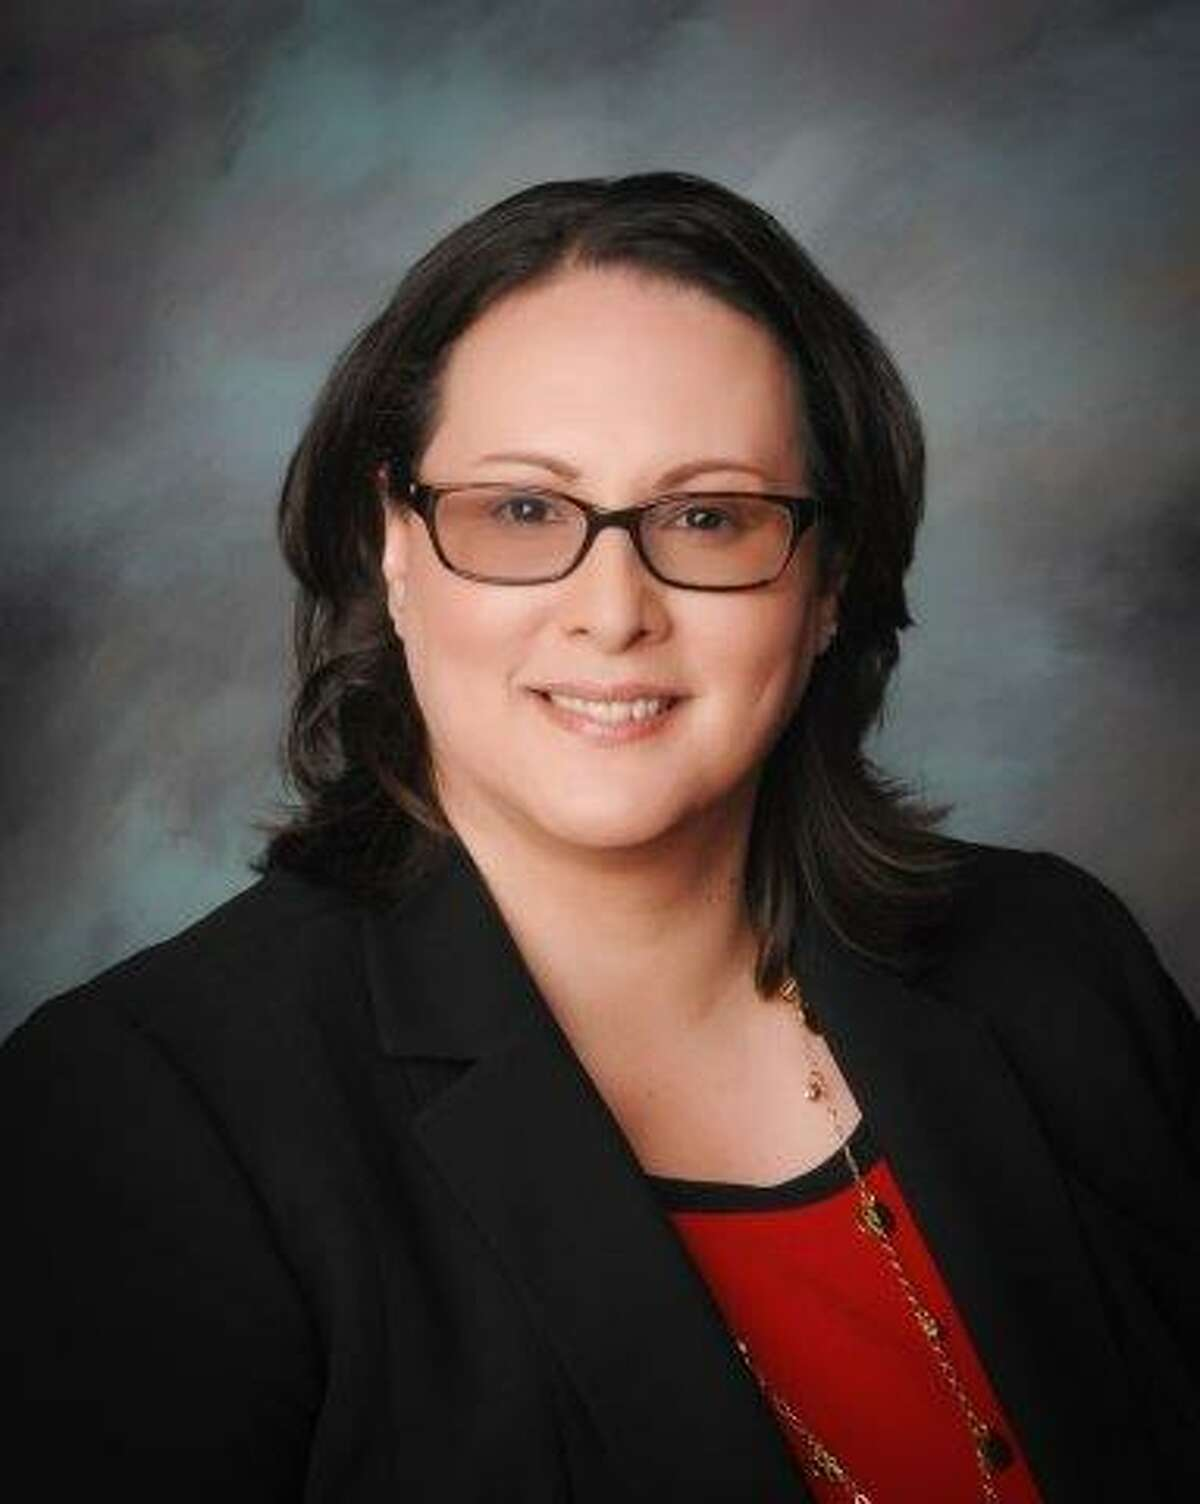 The Midland Independent School District board selected Angelica Ramsey of Pleasant Valley School District in Camarillo, California, as the lone finalist for the permanent superintendent position.